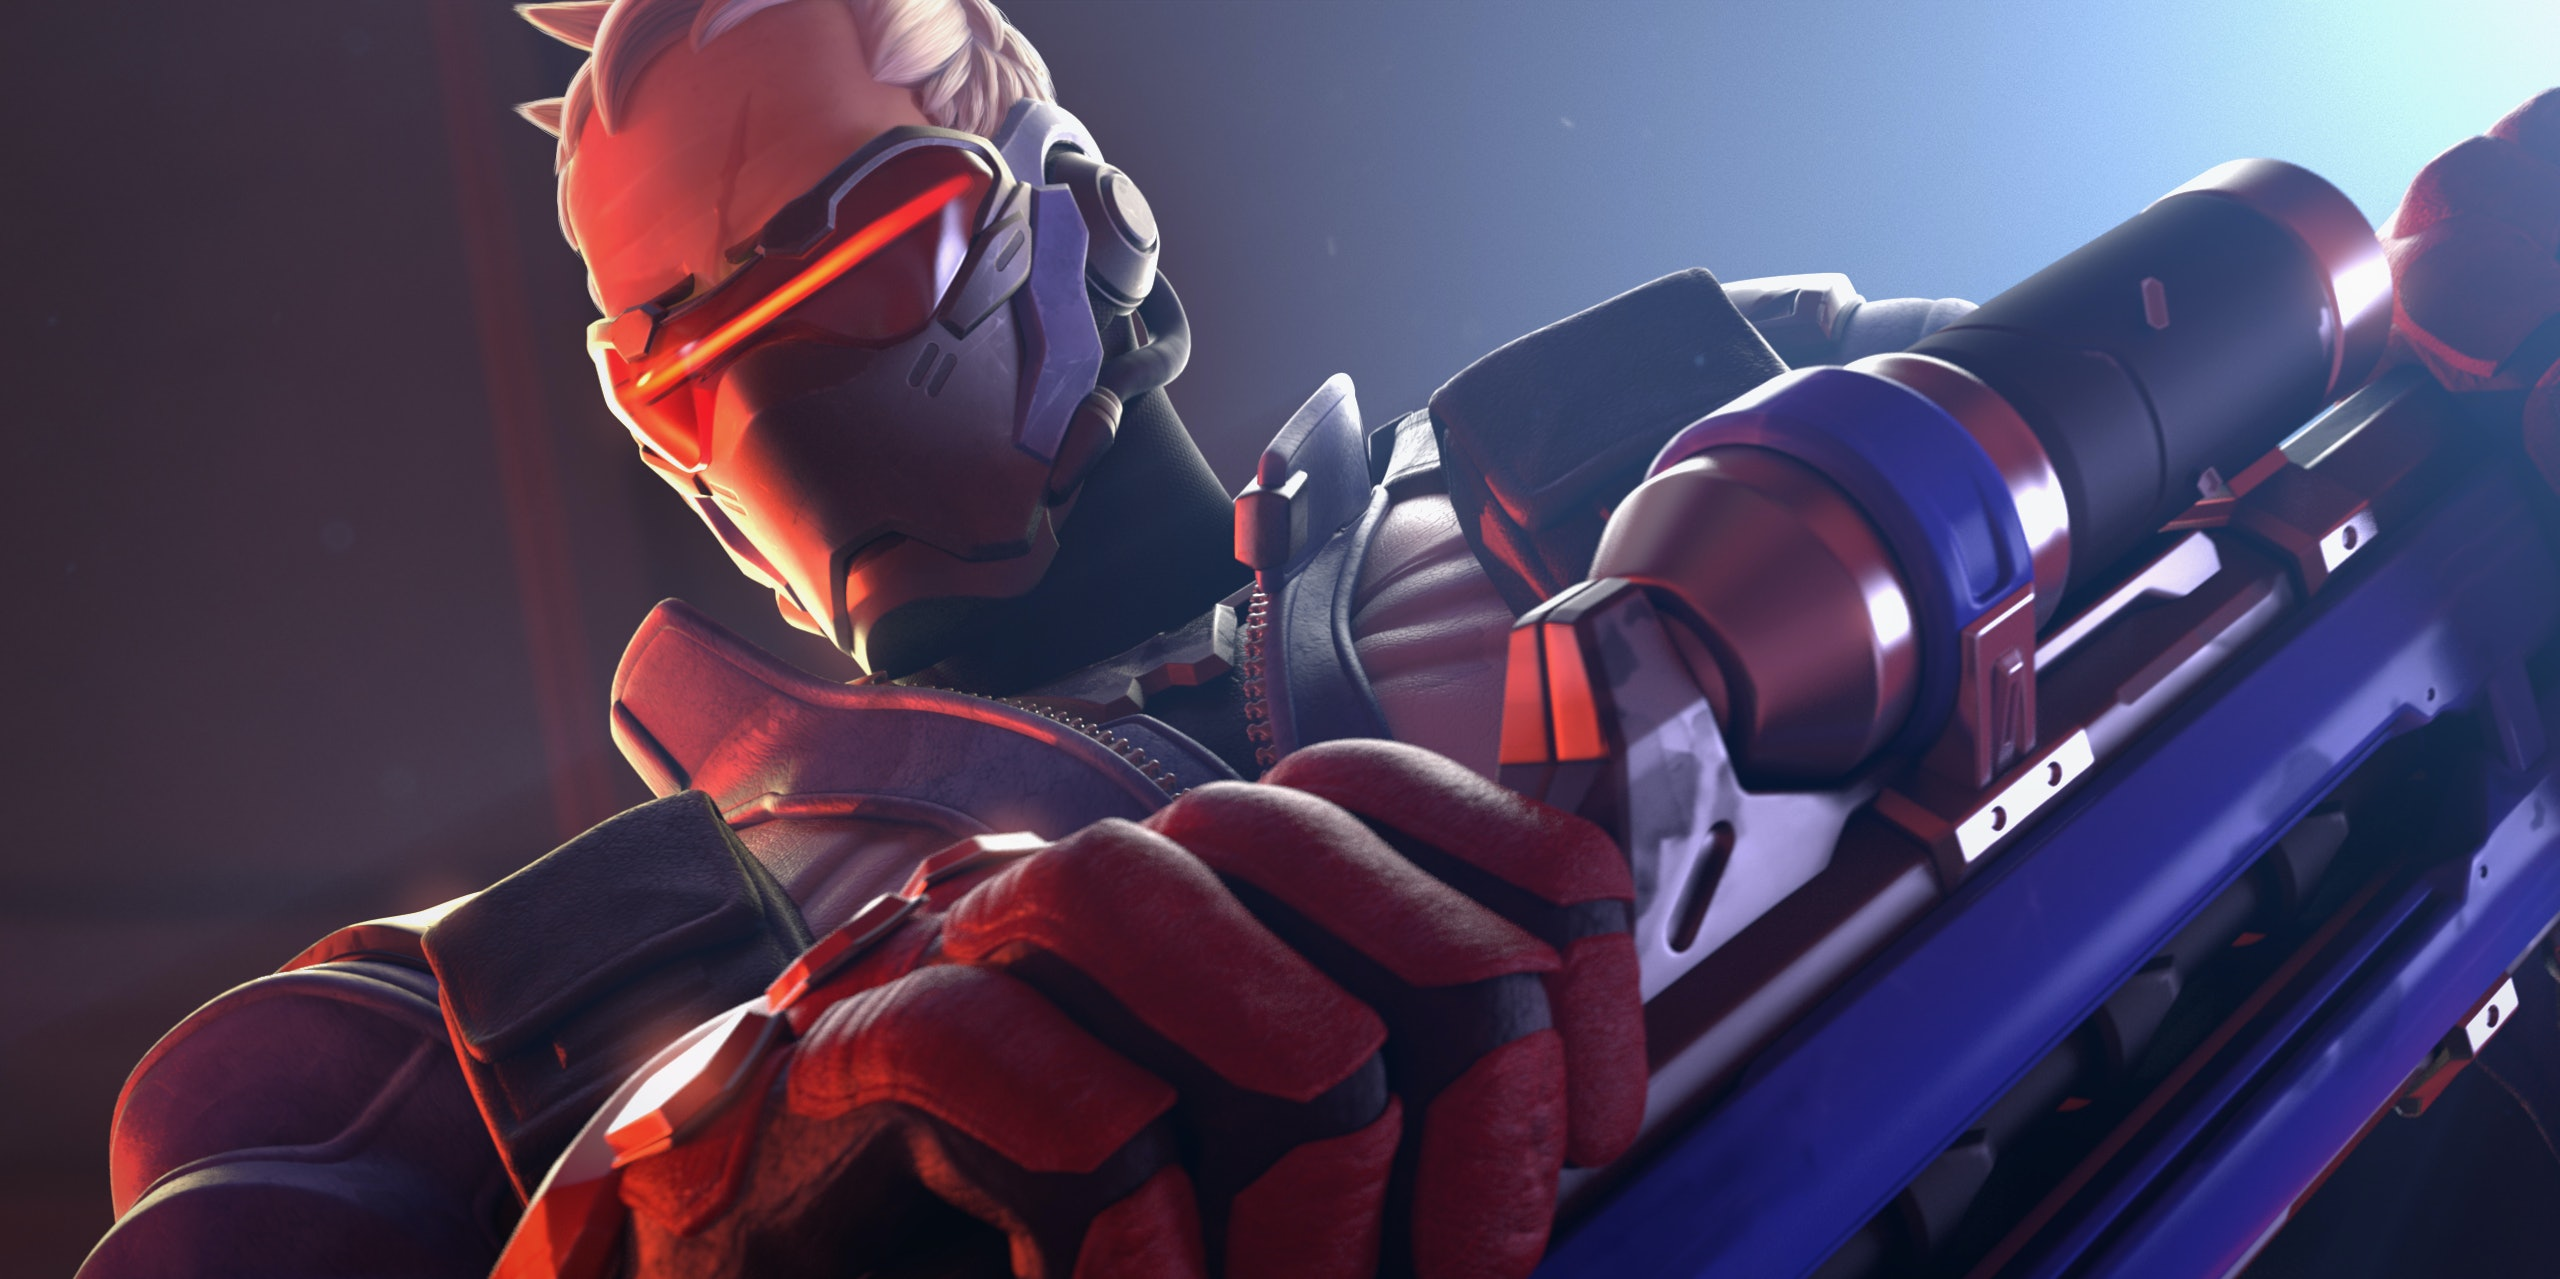 Elon Musk Finally Admits He Mains Soldier: 76 in 'Overwatch'